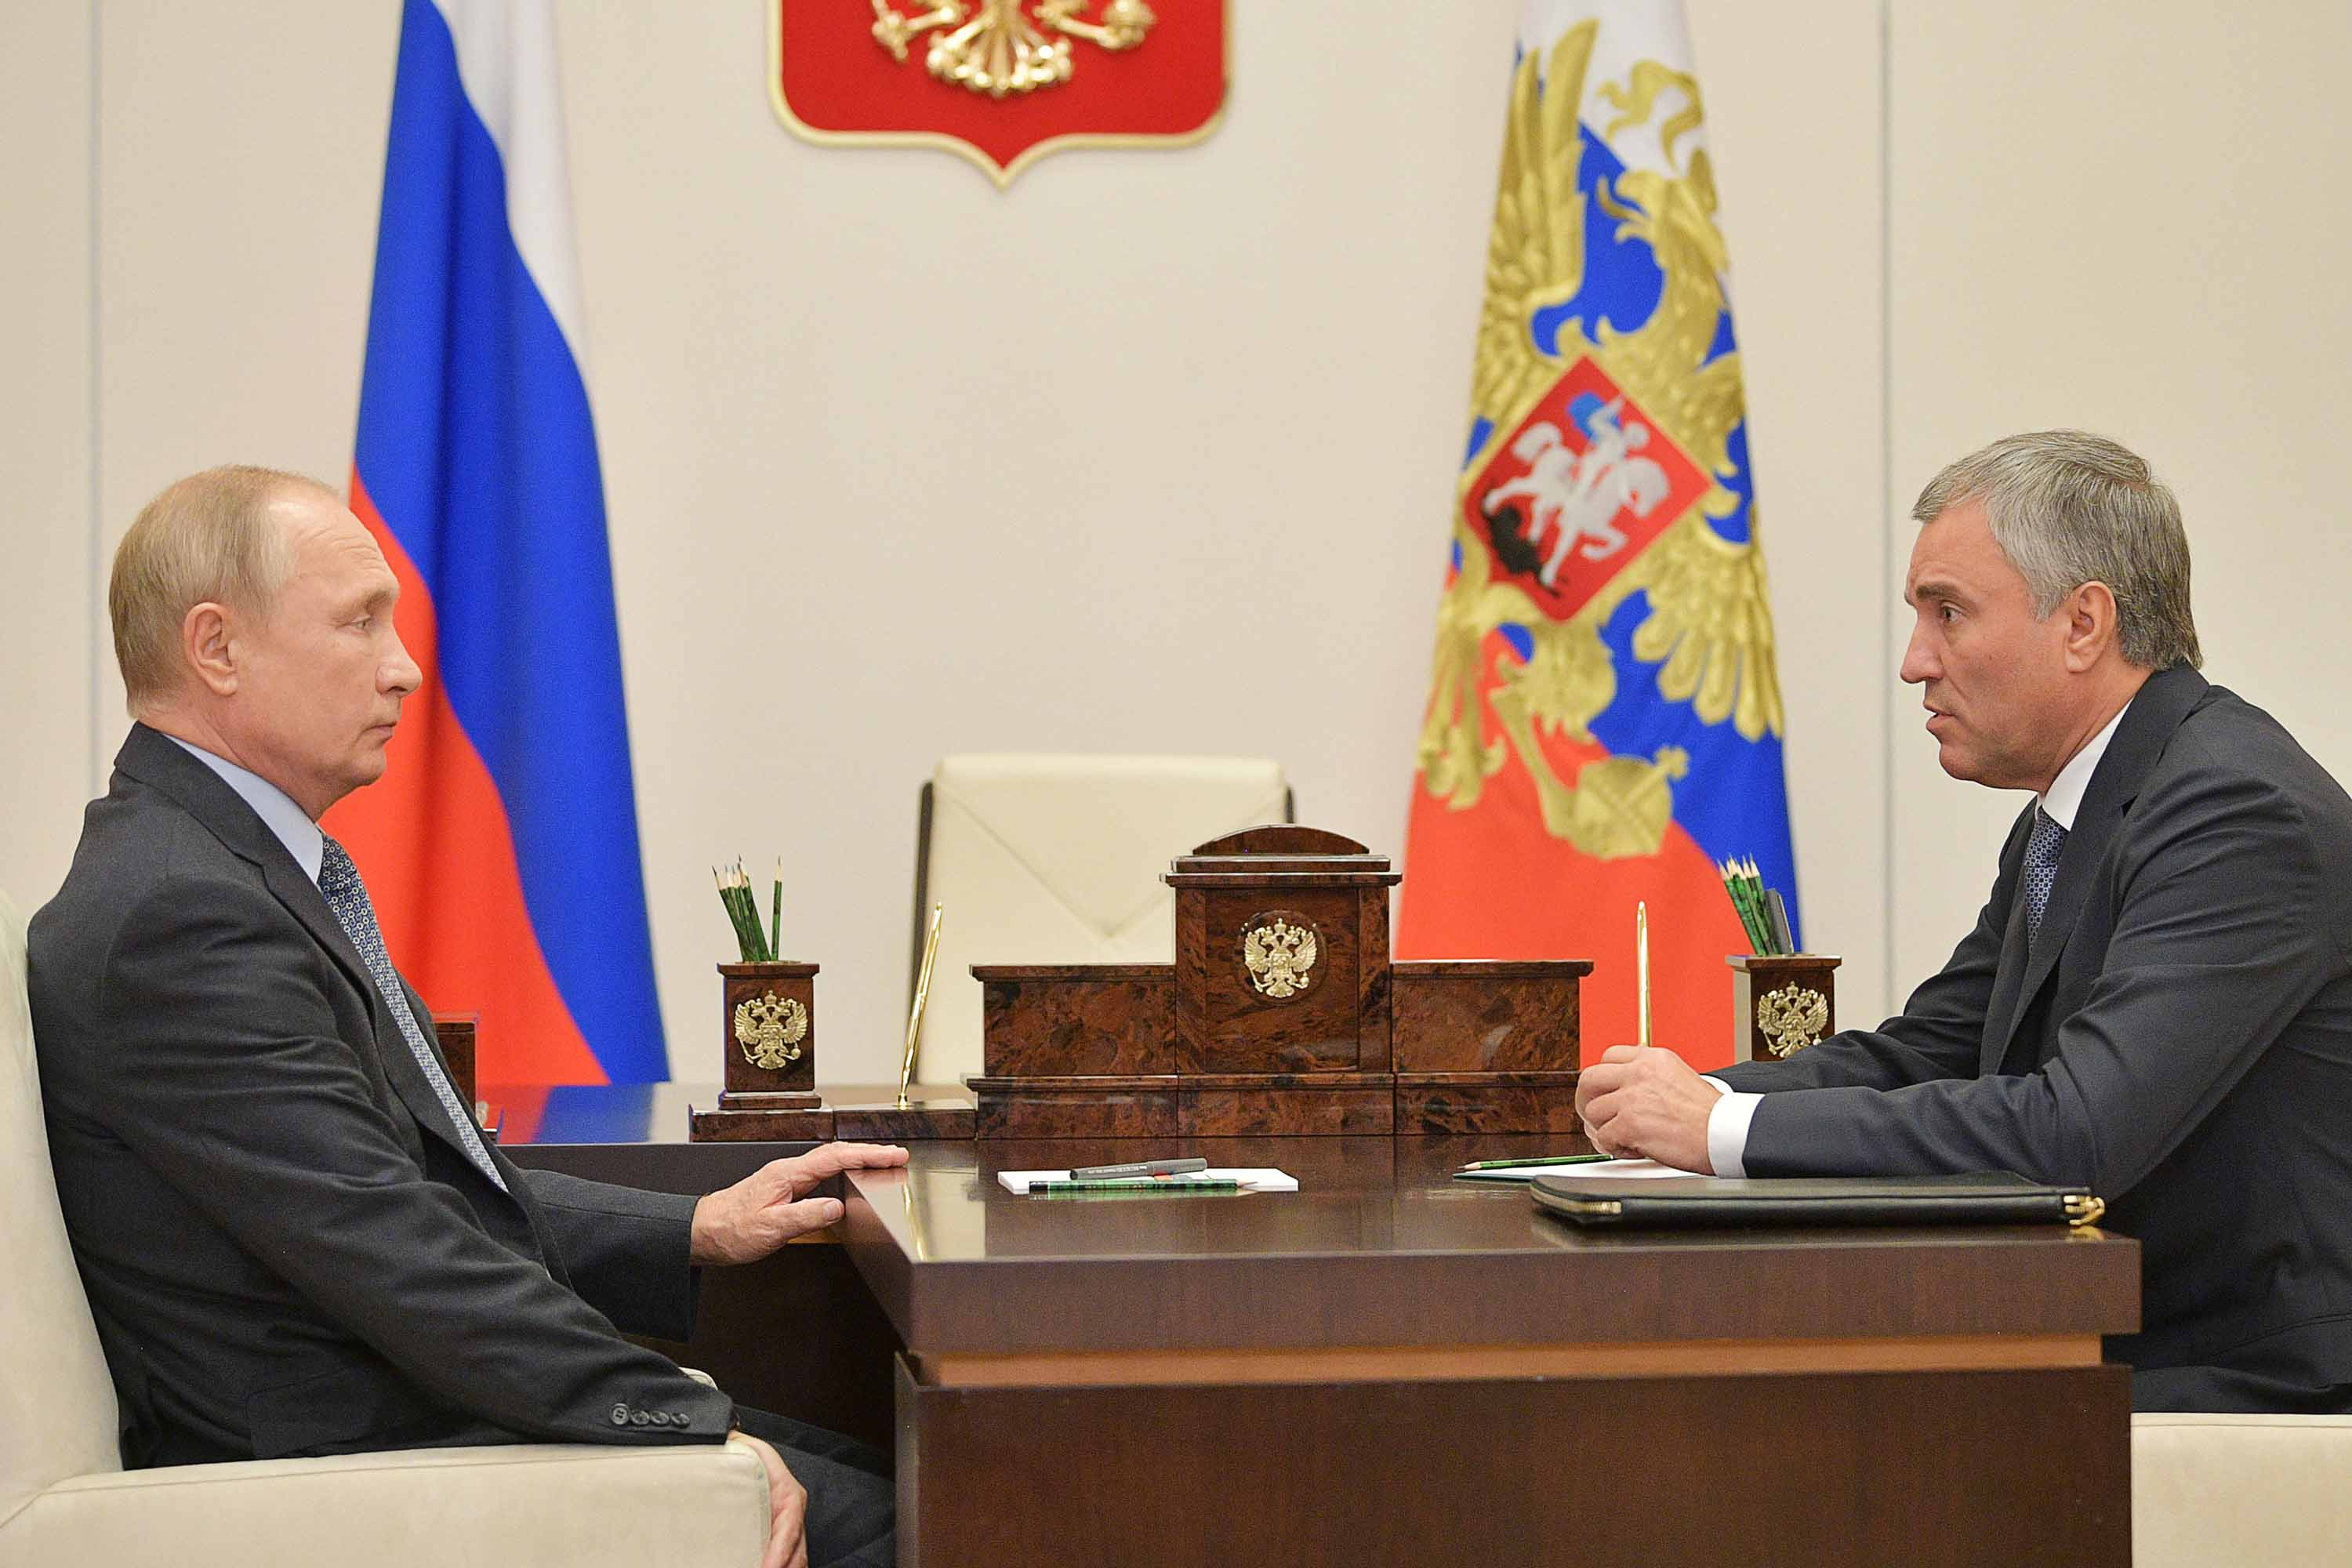 Russia's President Vladimir Putin meets with Russian State Duma Chairman Vyacheslav Volodin in Moscow on October 26.